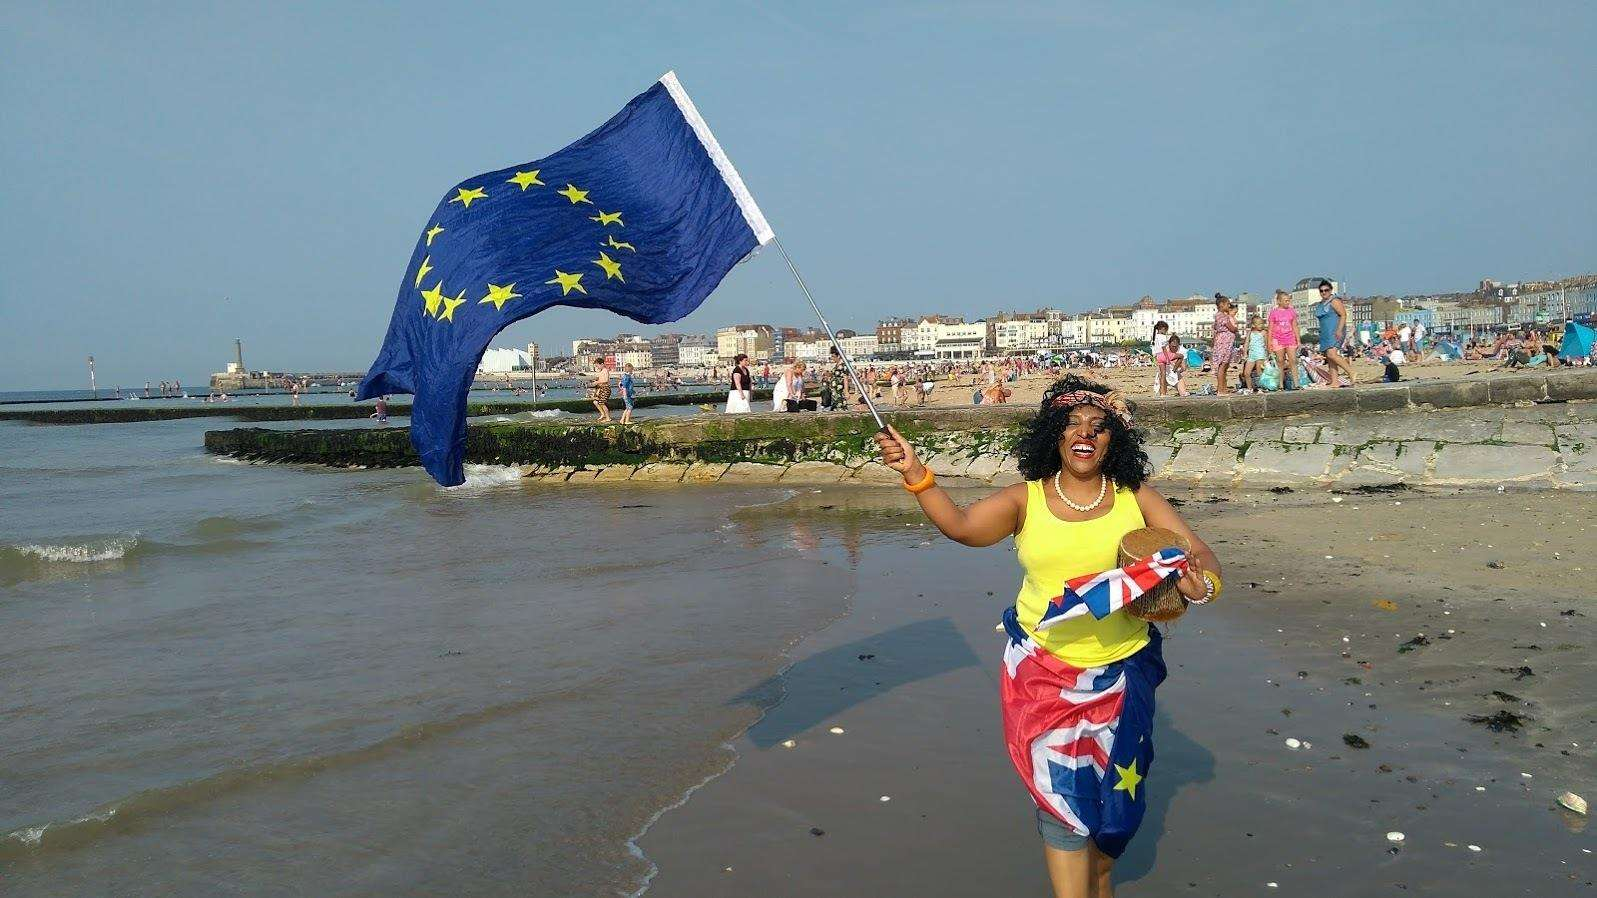 Flags were waved in support of the EU (2932138)